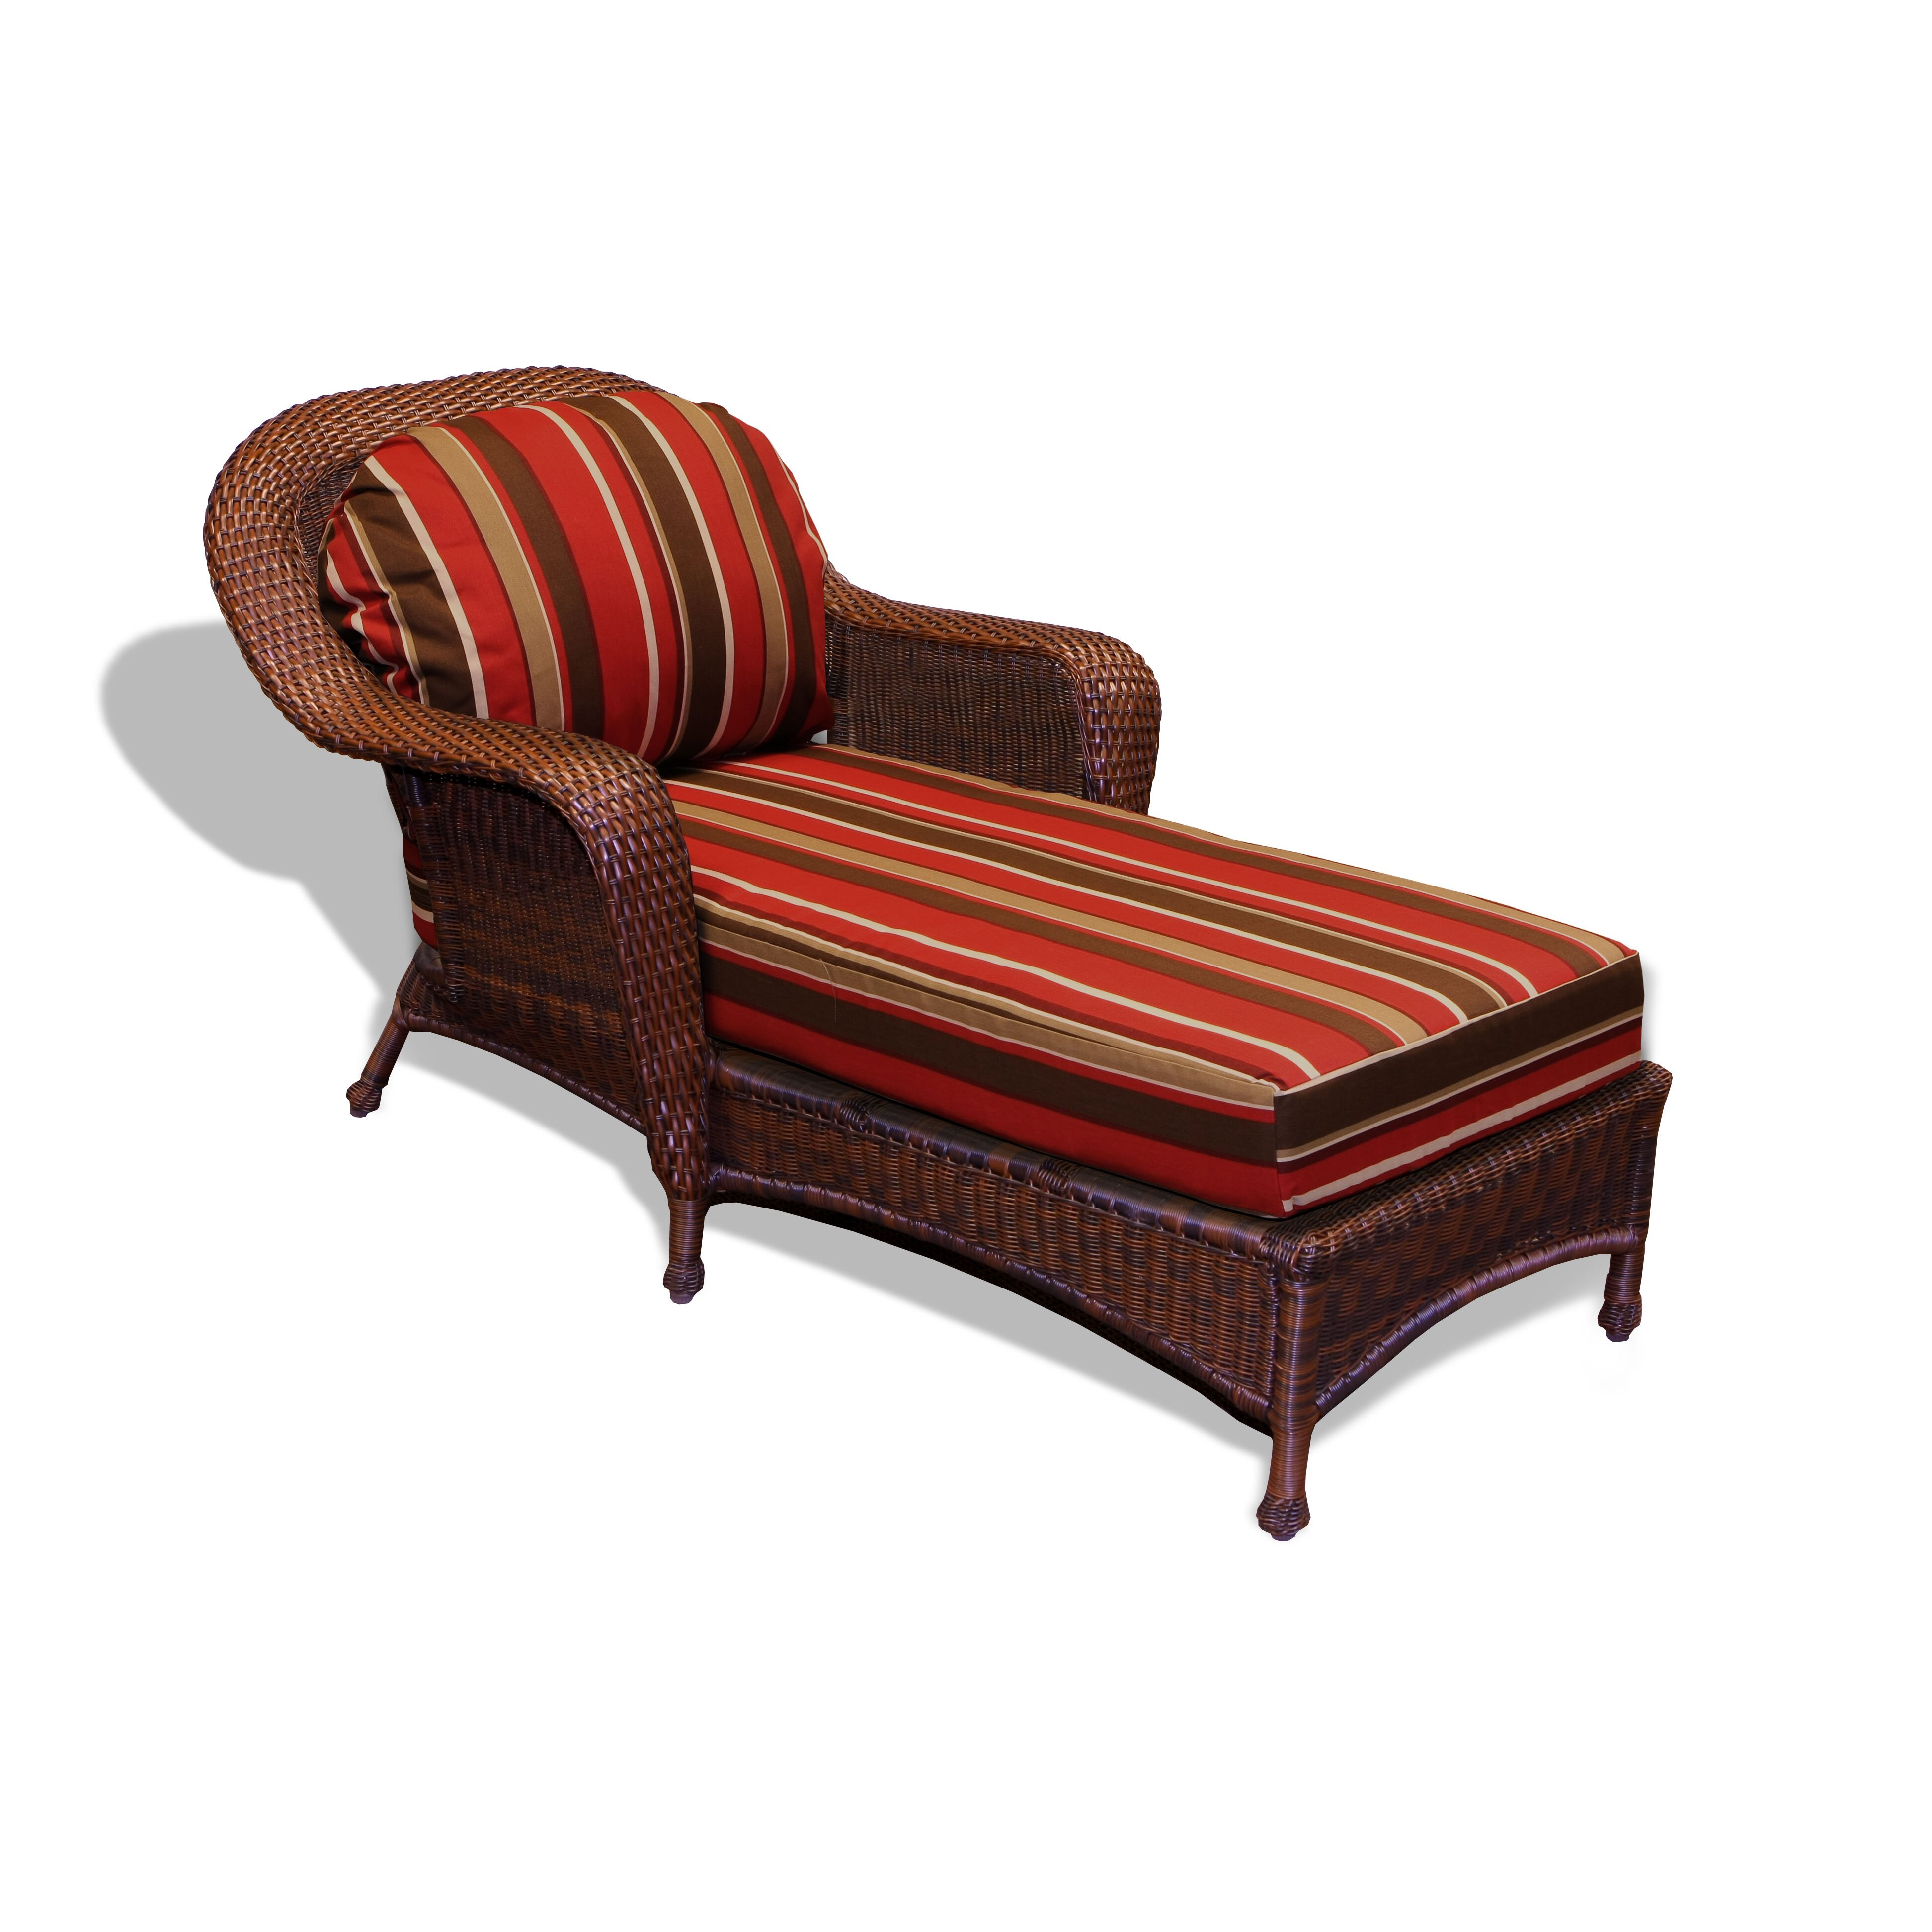 Darby home co fleischmann chaise lounge with cushion for Chaise lounge cushion sale